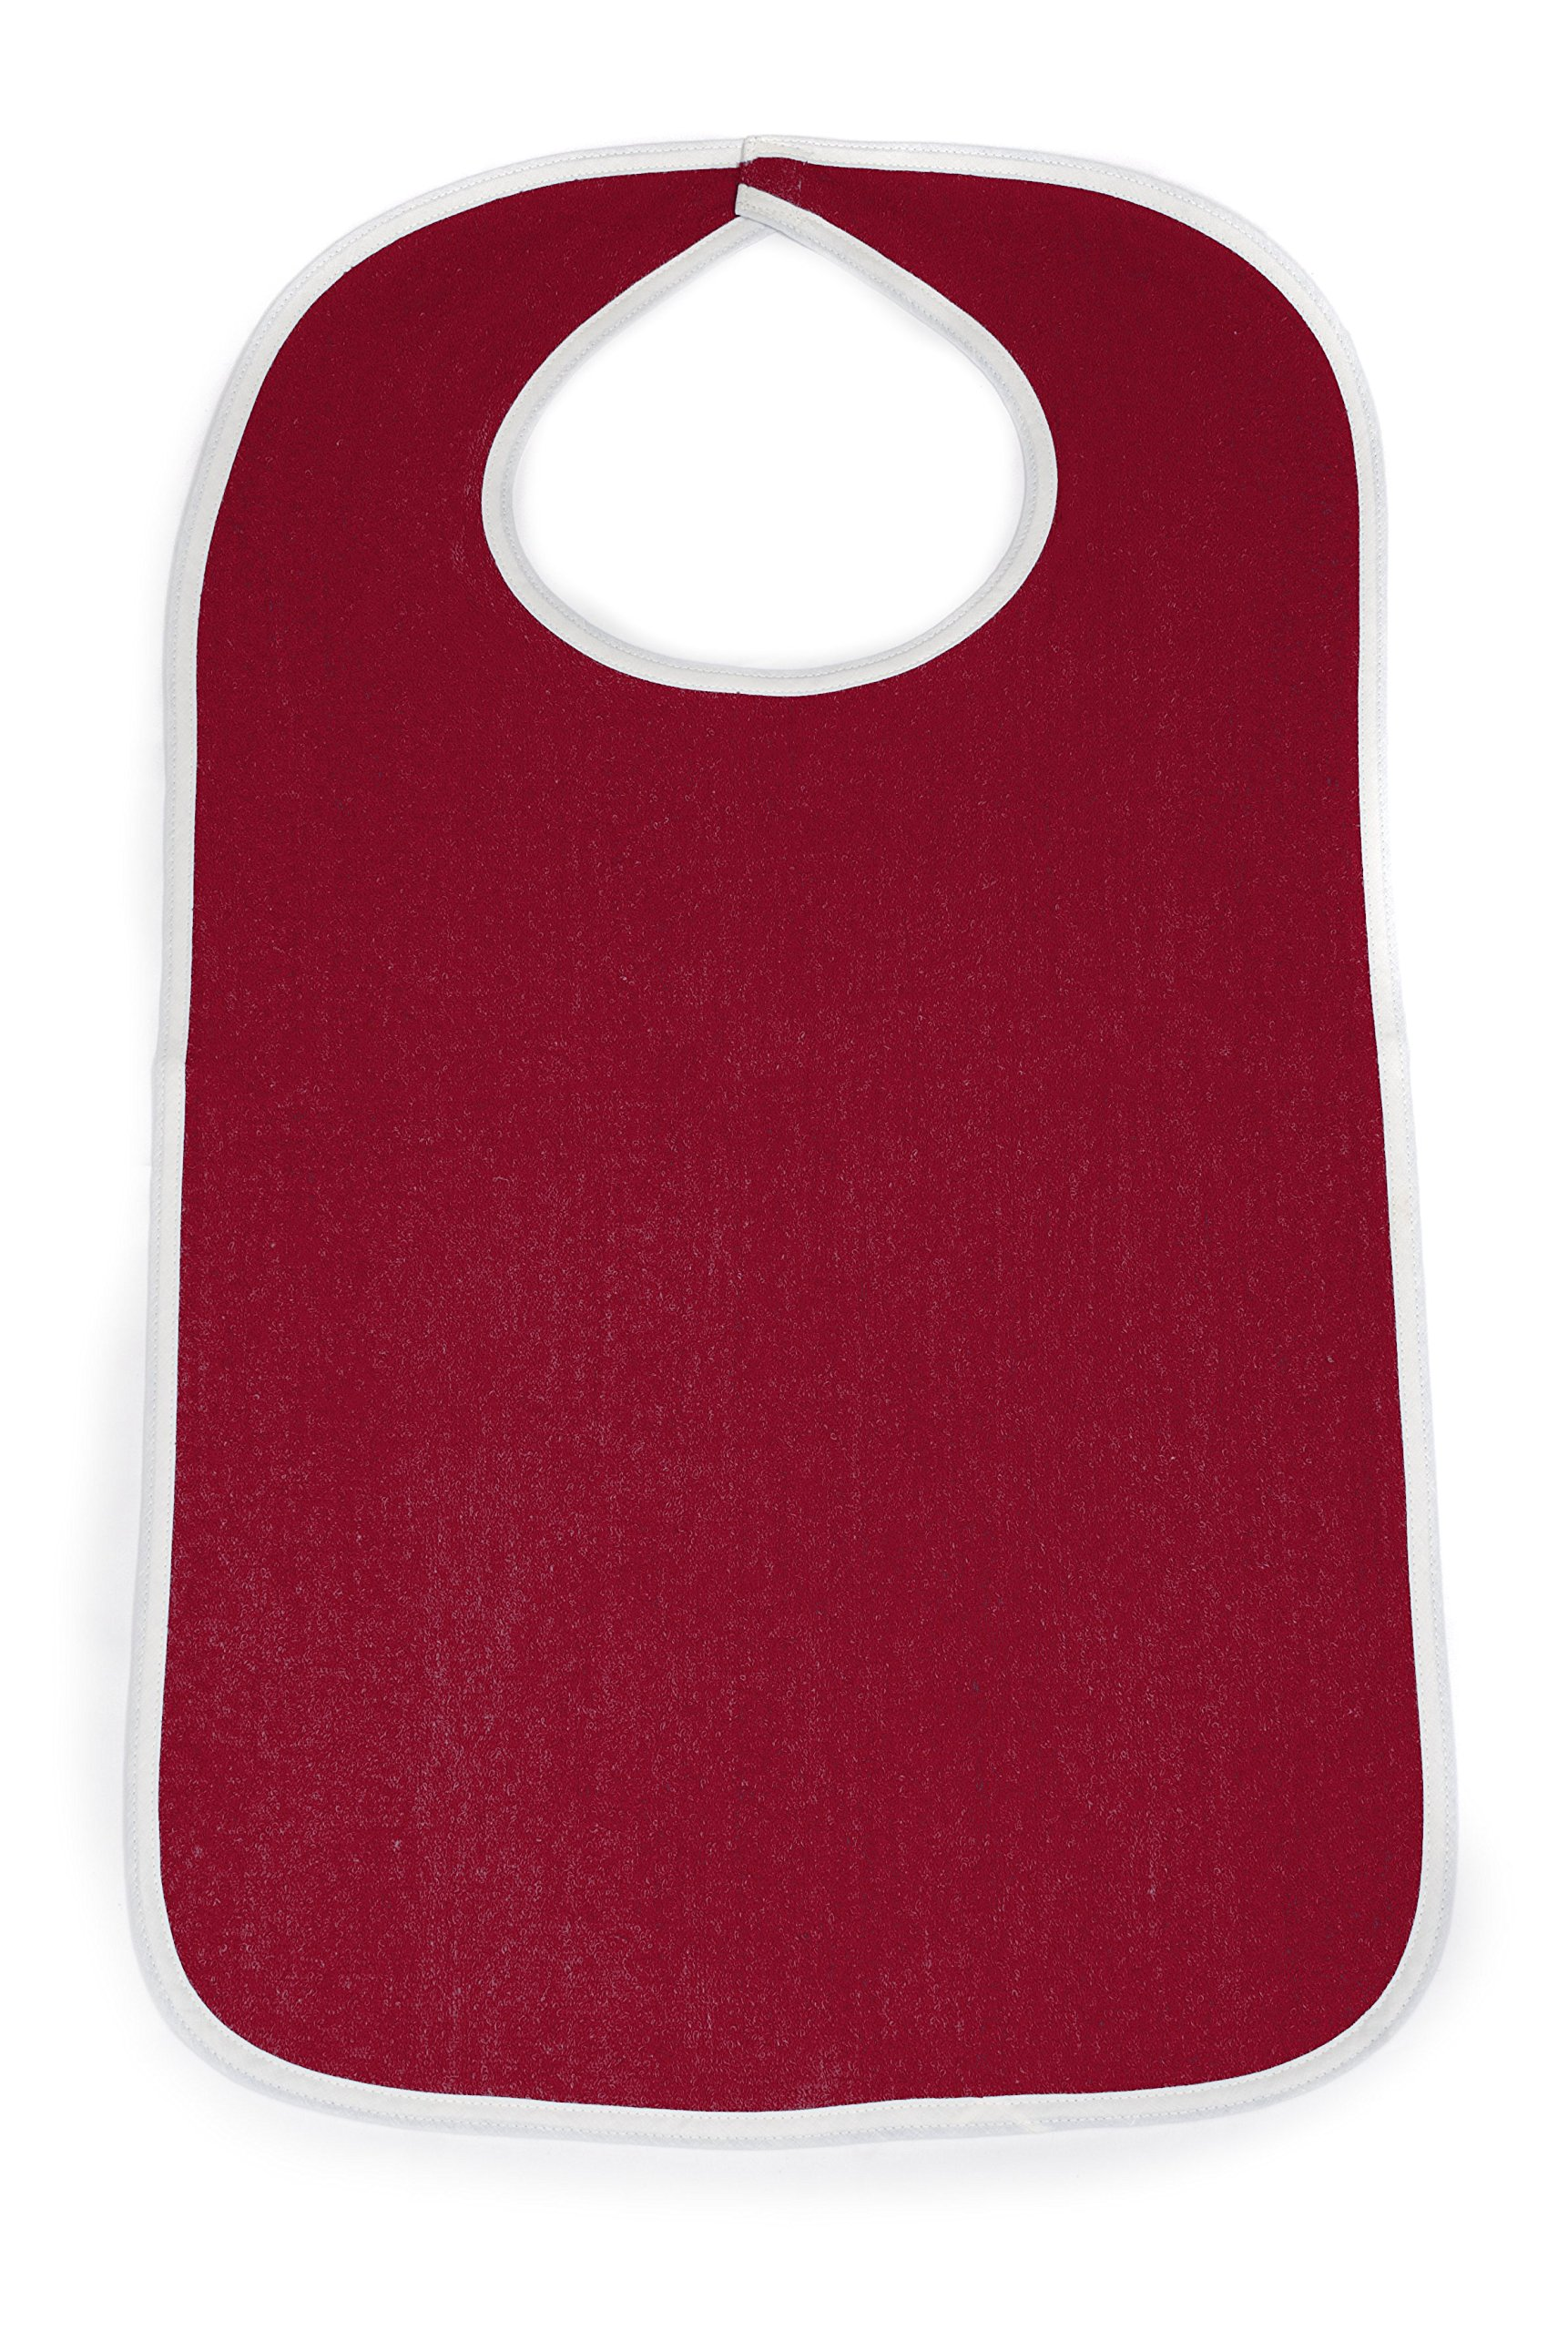 Comfort Finds Terry Cloth Adult Size Senior Bib Value Pack with Hook & Loop Closure - Elderly Men and Women Food Catcher Solutions (Burgundy, 12 Pack)